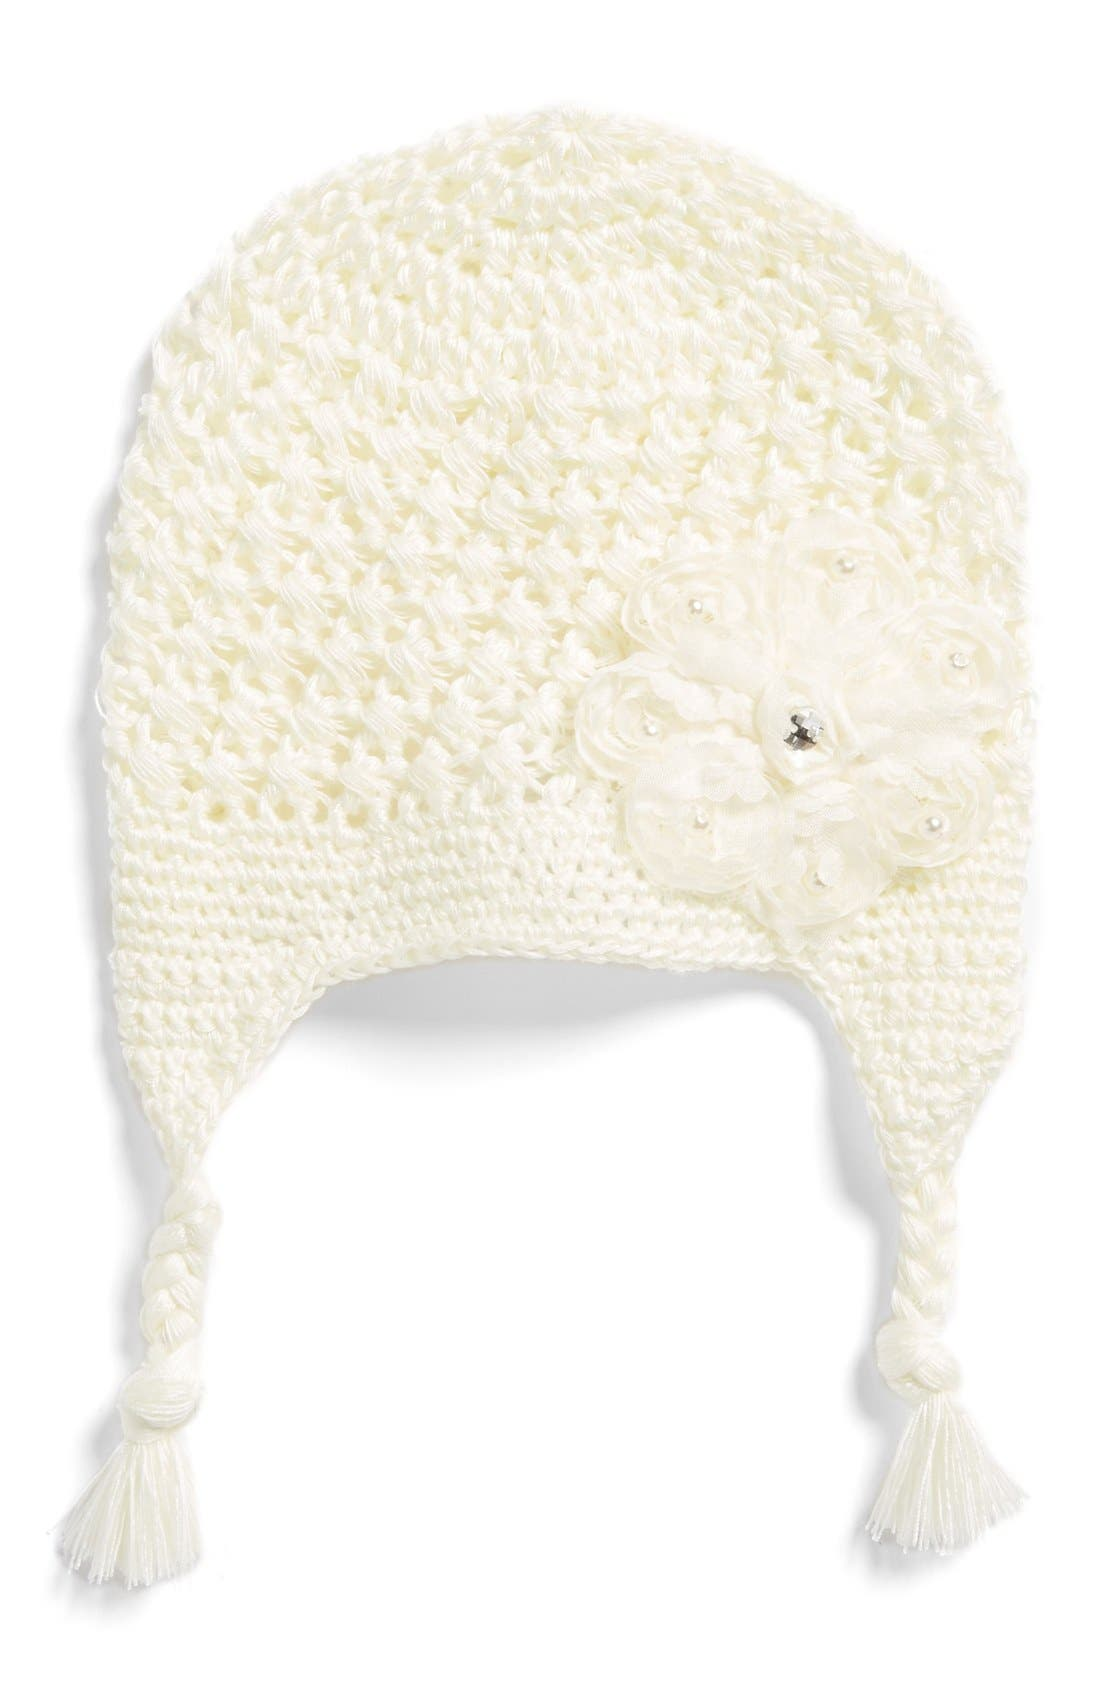 Main Image - PLHBows & Laces Crochet Hat (Baby Girls)